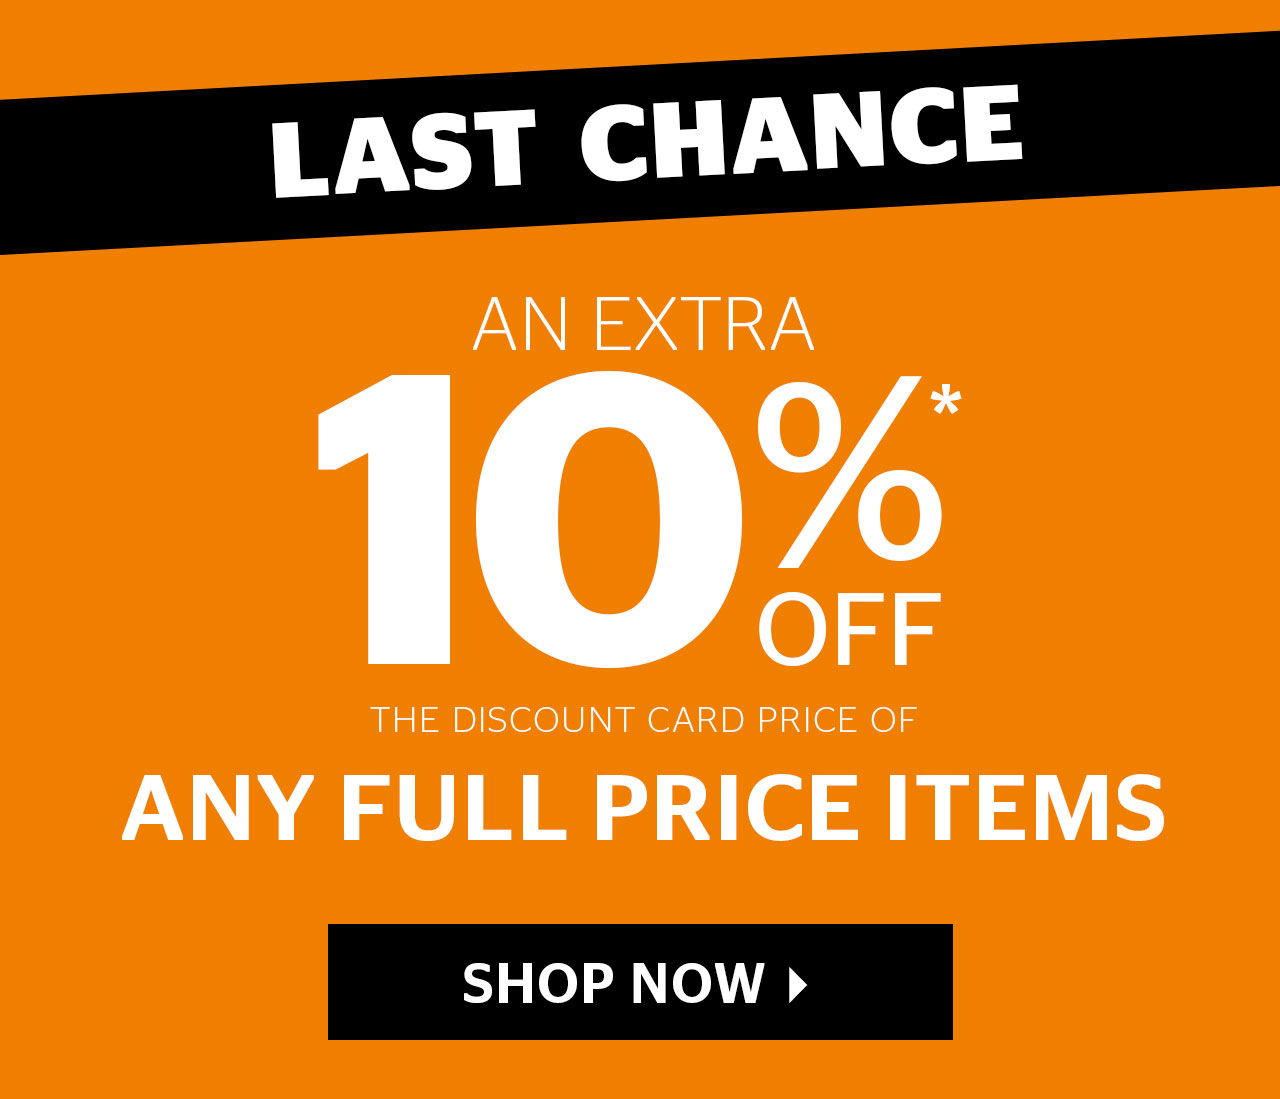 Last Chance - Get an extra 10% Off The Discount Card Price on all full price items